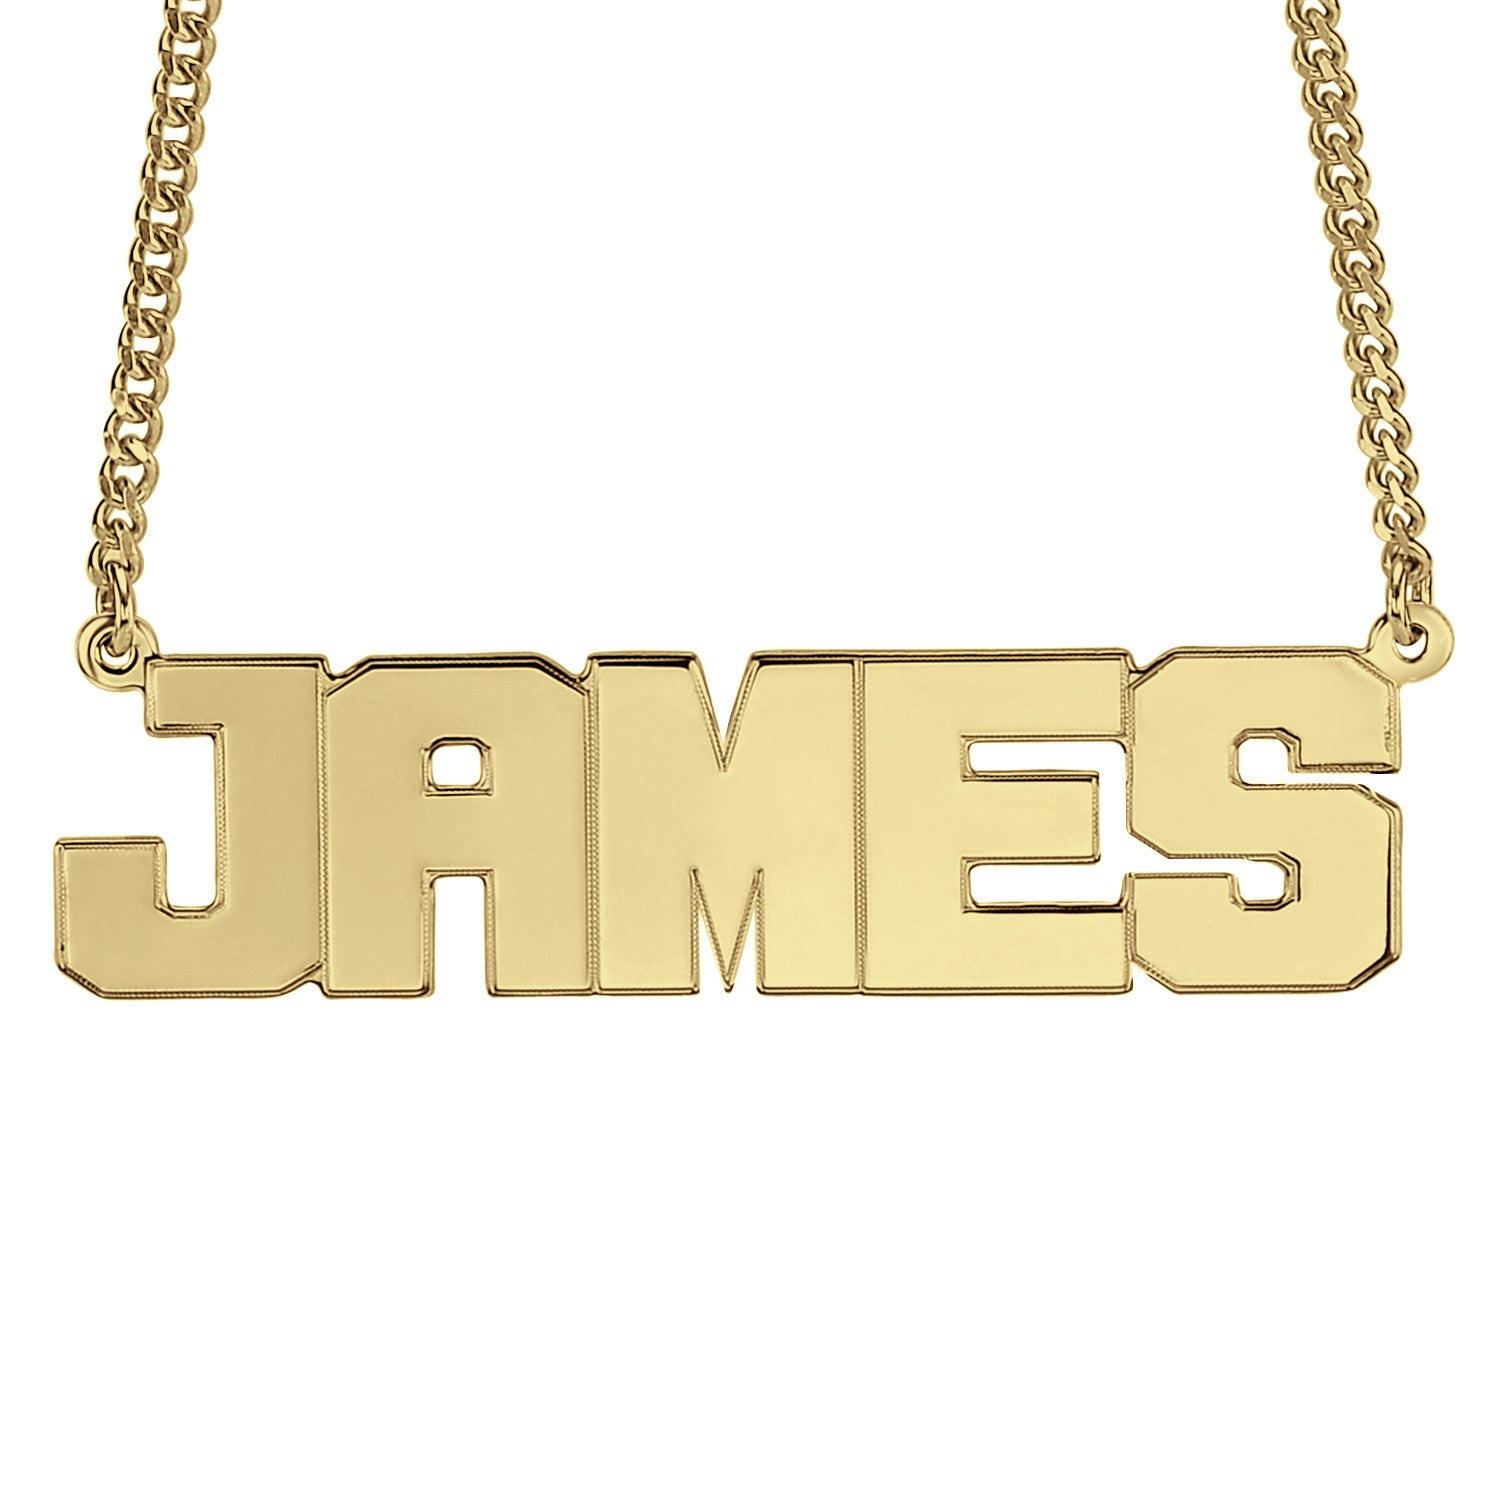 ip jewellery script gold silver sterling walmart hollywood over personalized necklace chain name or com